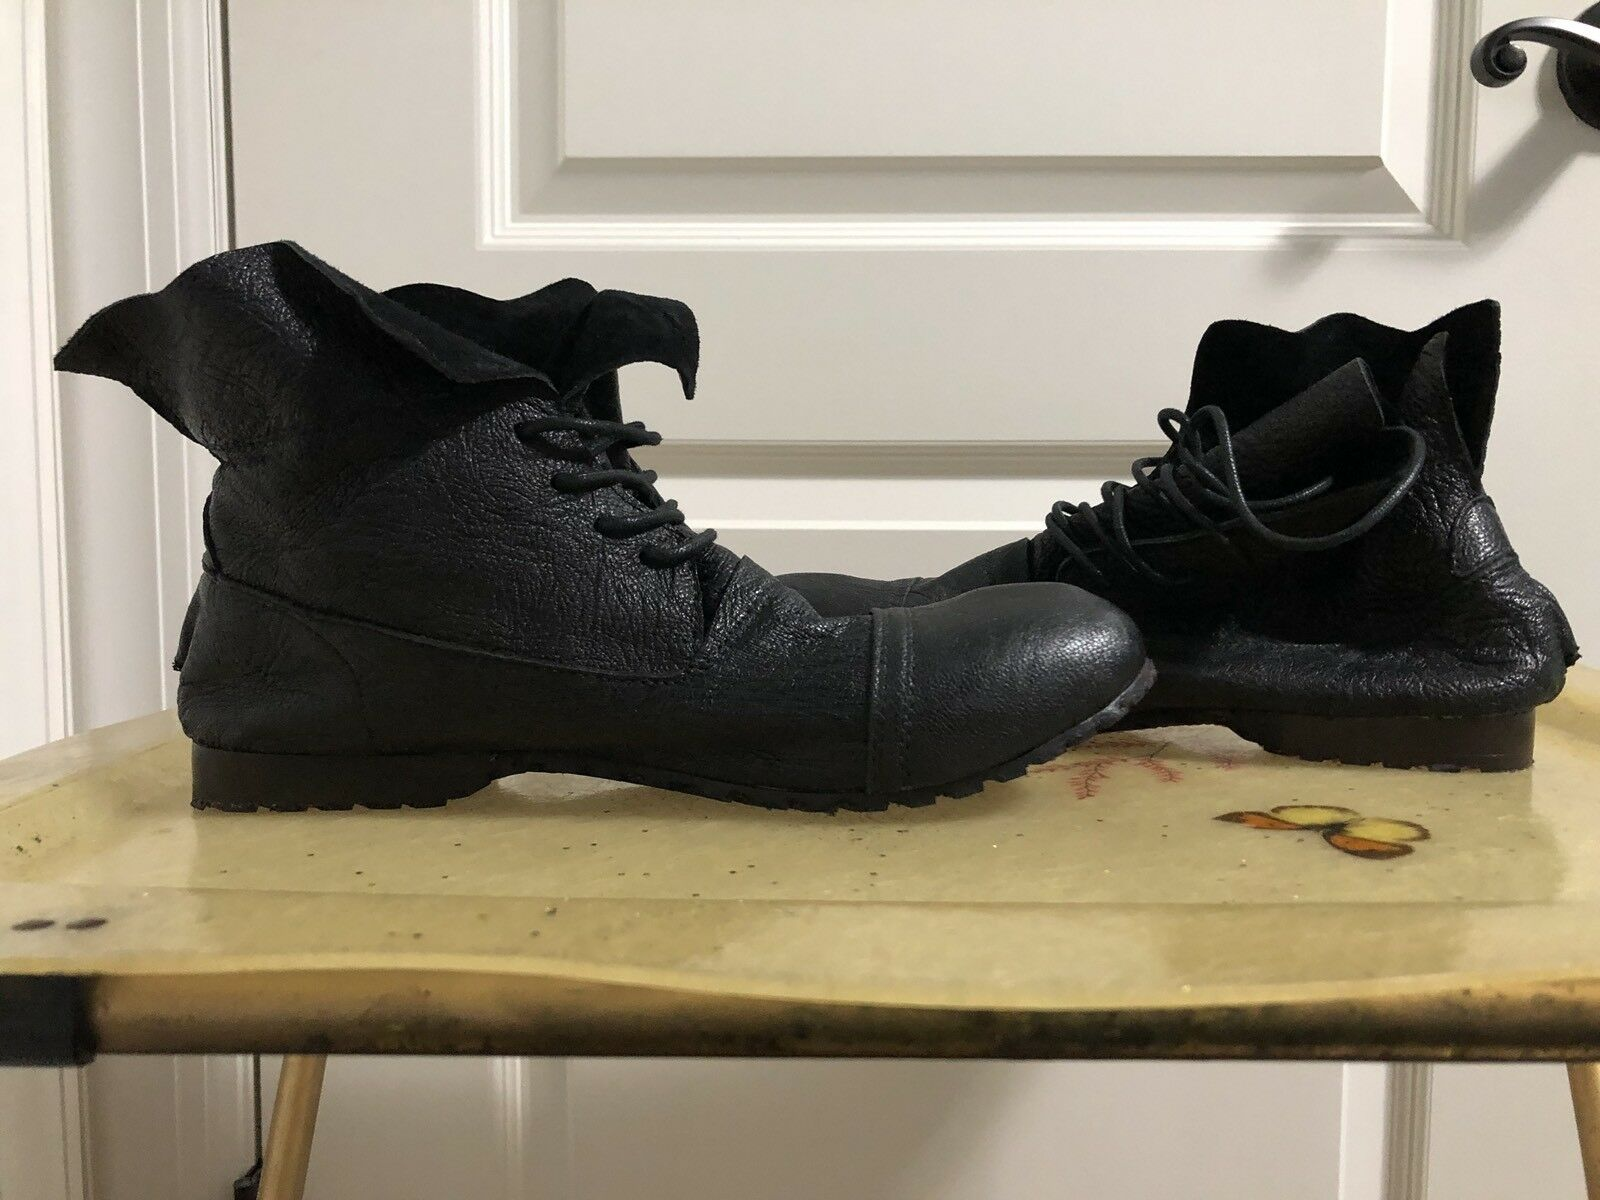 Paul Smith Black Lace Up Boots EURO 39 Leather US 8 Womens